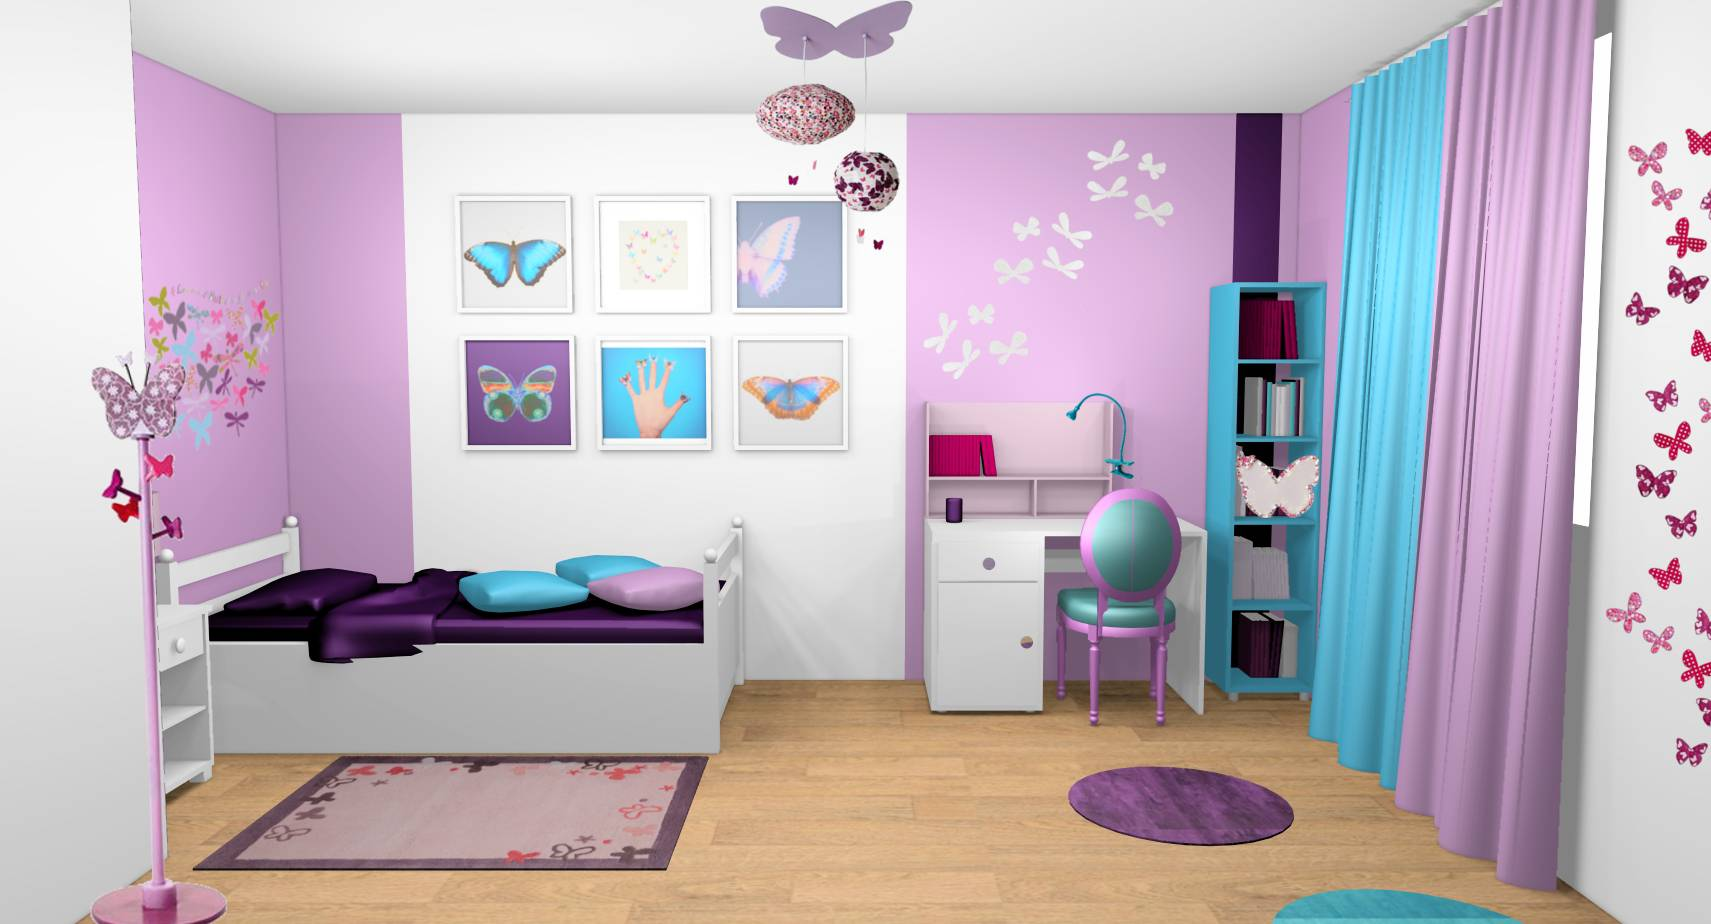 les chambres d 39 enfants vues par votre d coratrice d. Black Bedroom Furniture Sets. Home Design Ideas